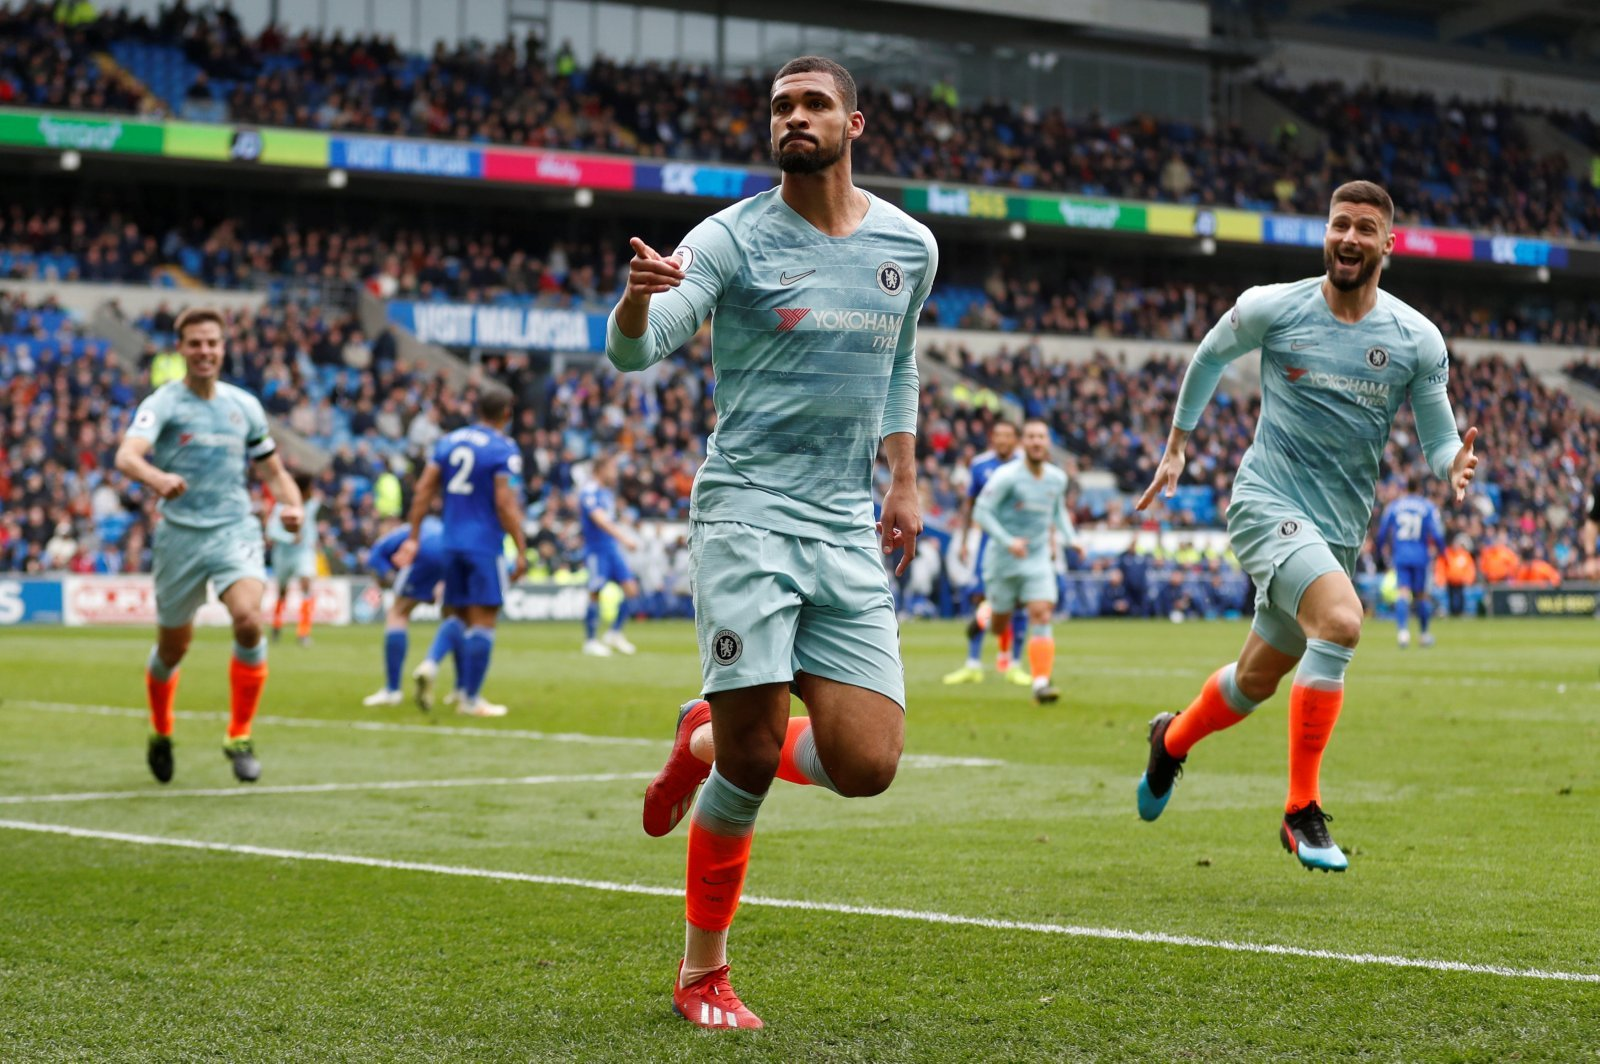 Chelsea: Ruben Loftus-Cheek must lead a youth revolution for the club